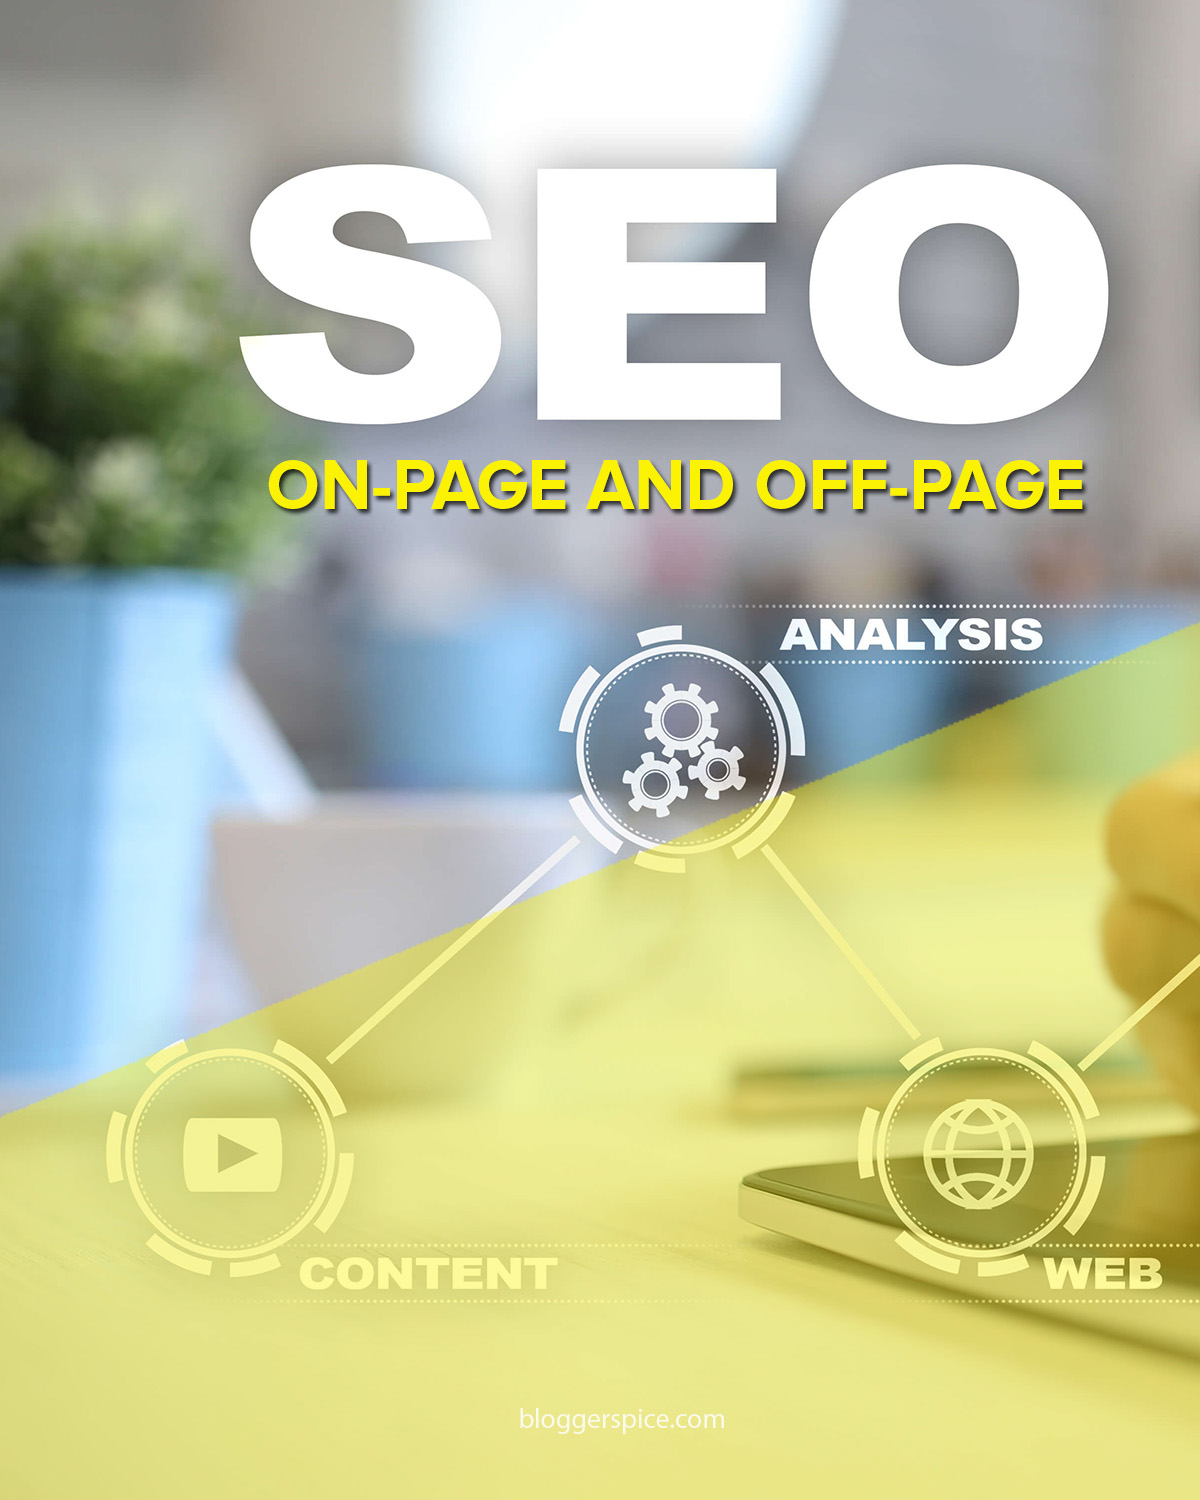 The Most effective SEO - On-Page and Off-Page optimization